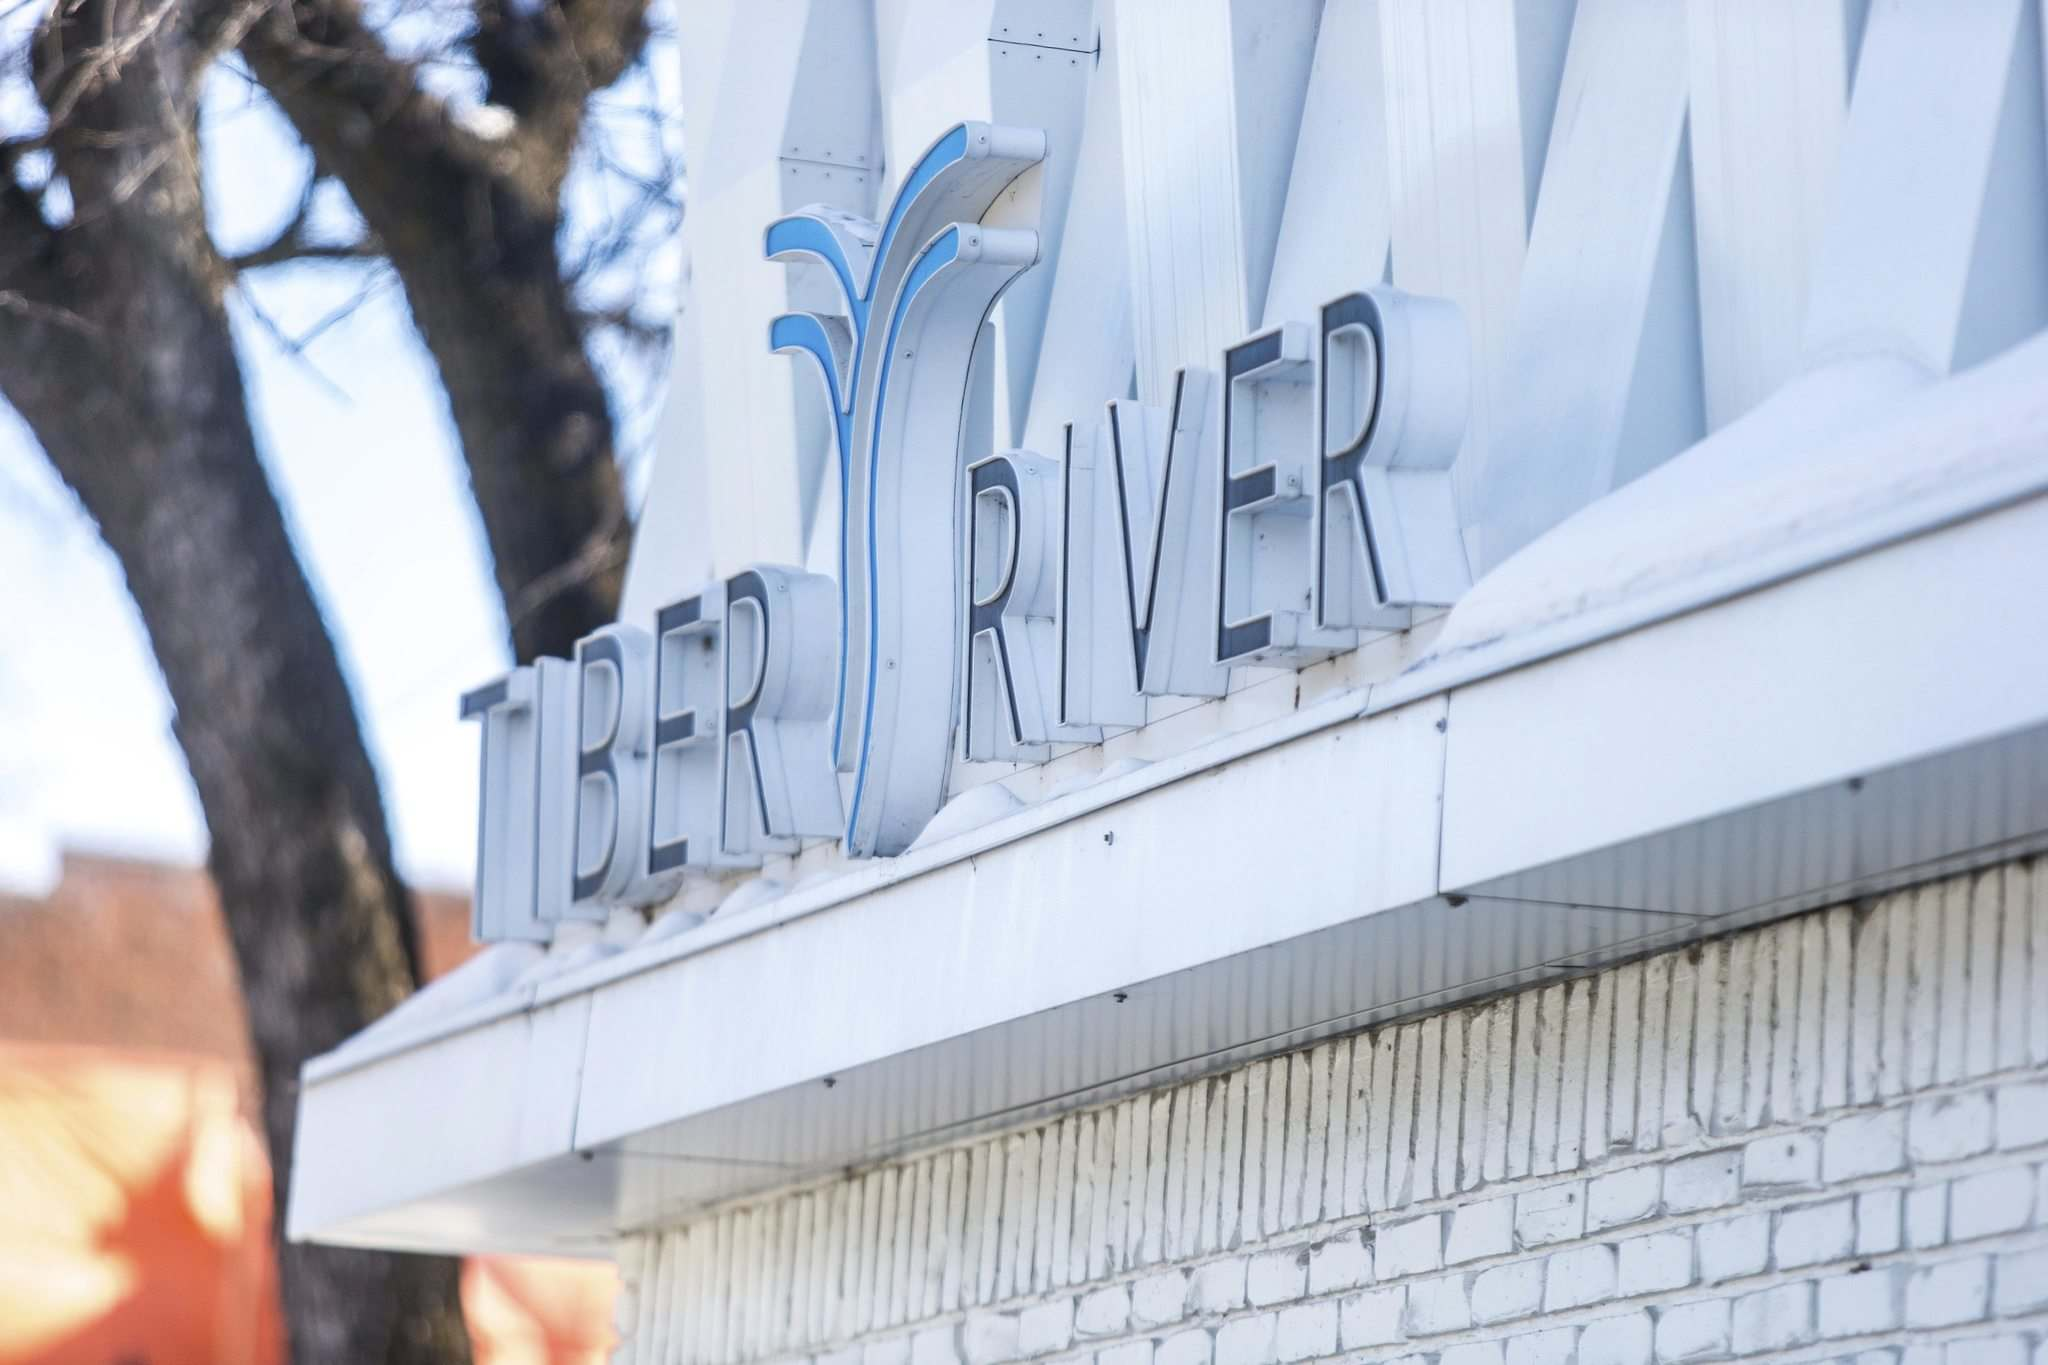 MIKAELA MACKENZIE / WINNIPEG FREE PRESS</p><p>Tiber River says it has consulted a human resources firm to conduct a workplace assessment.</p></p>